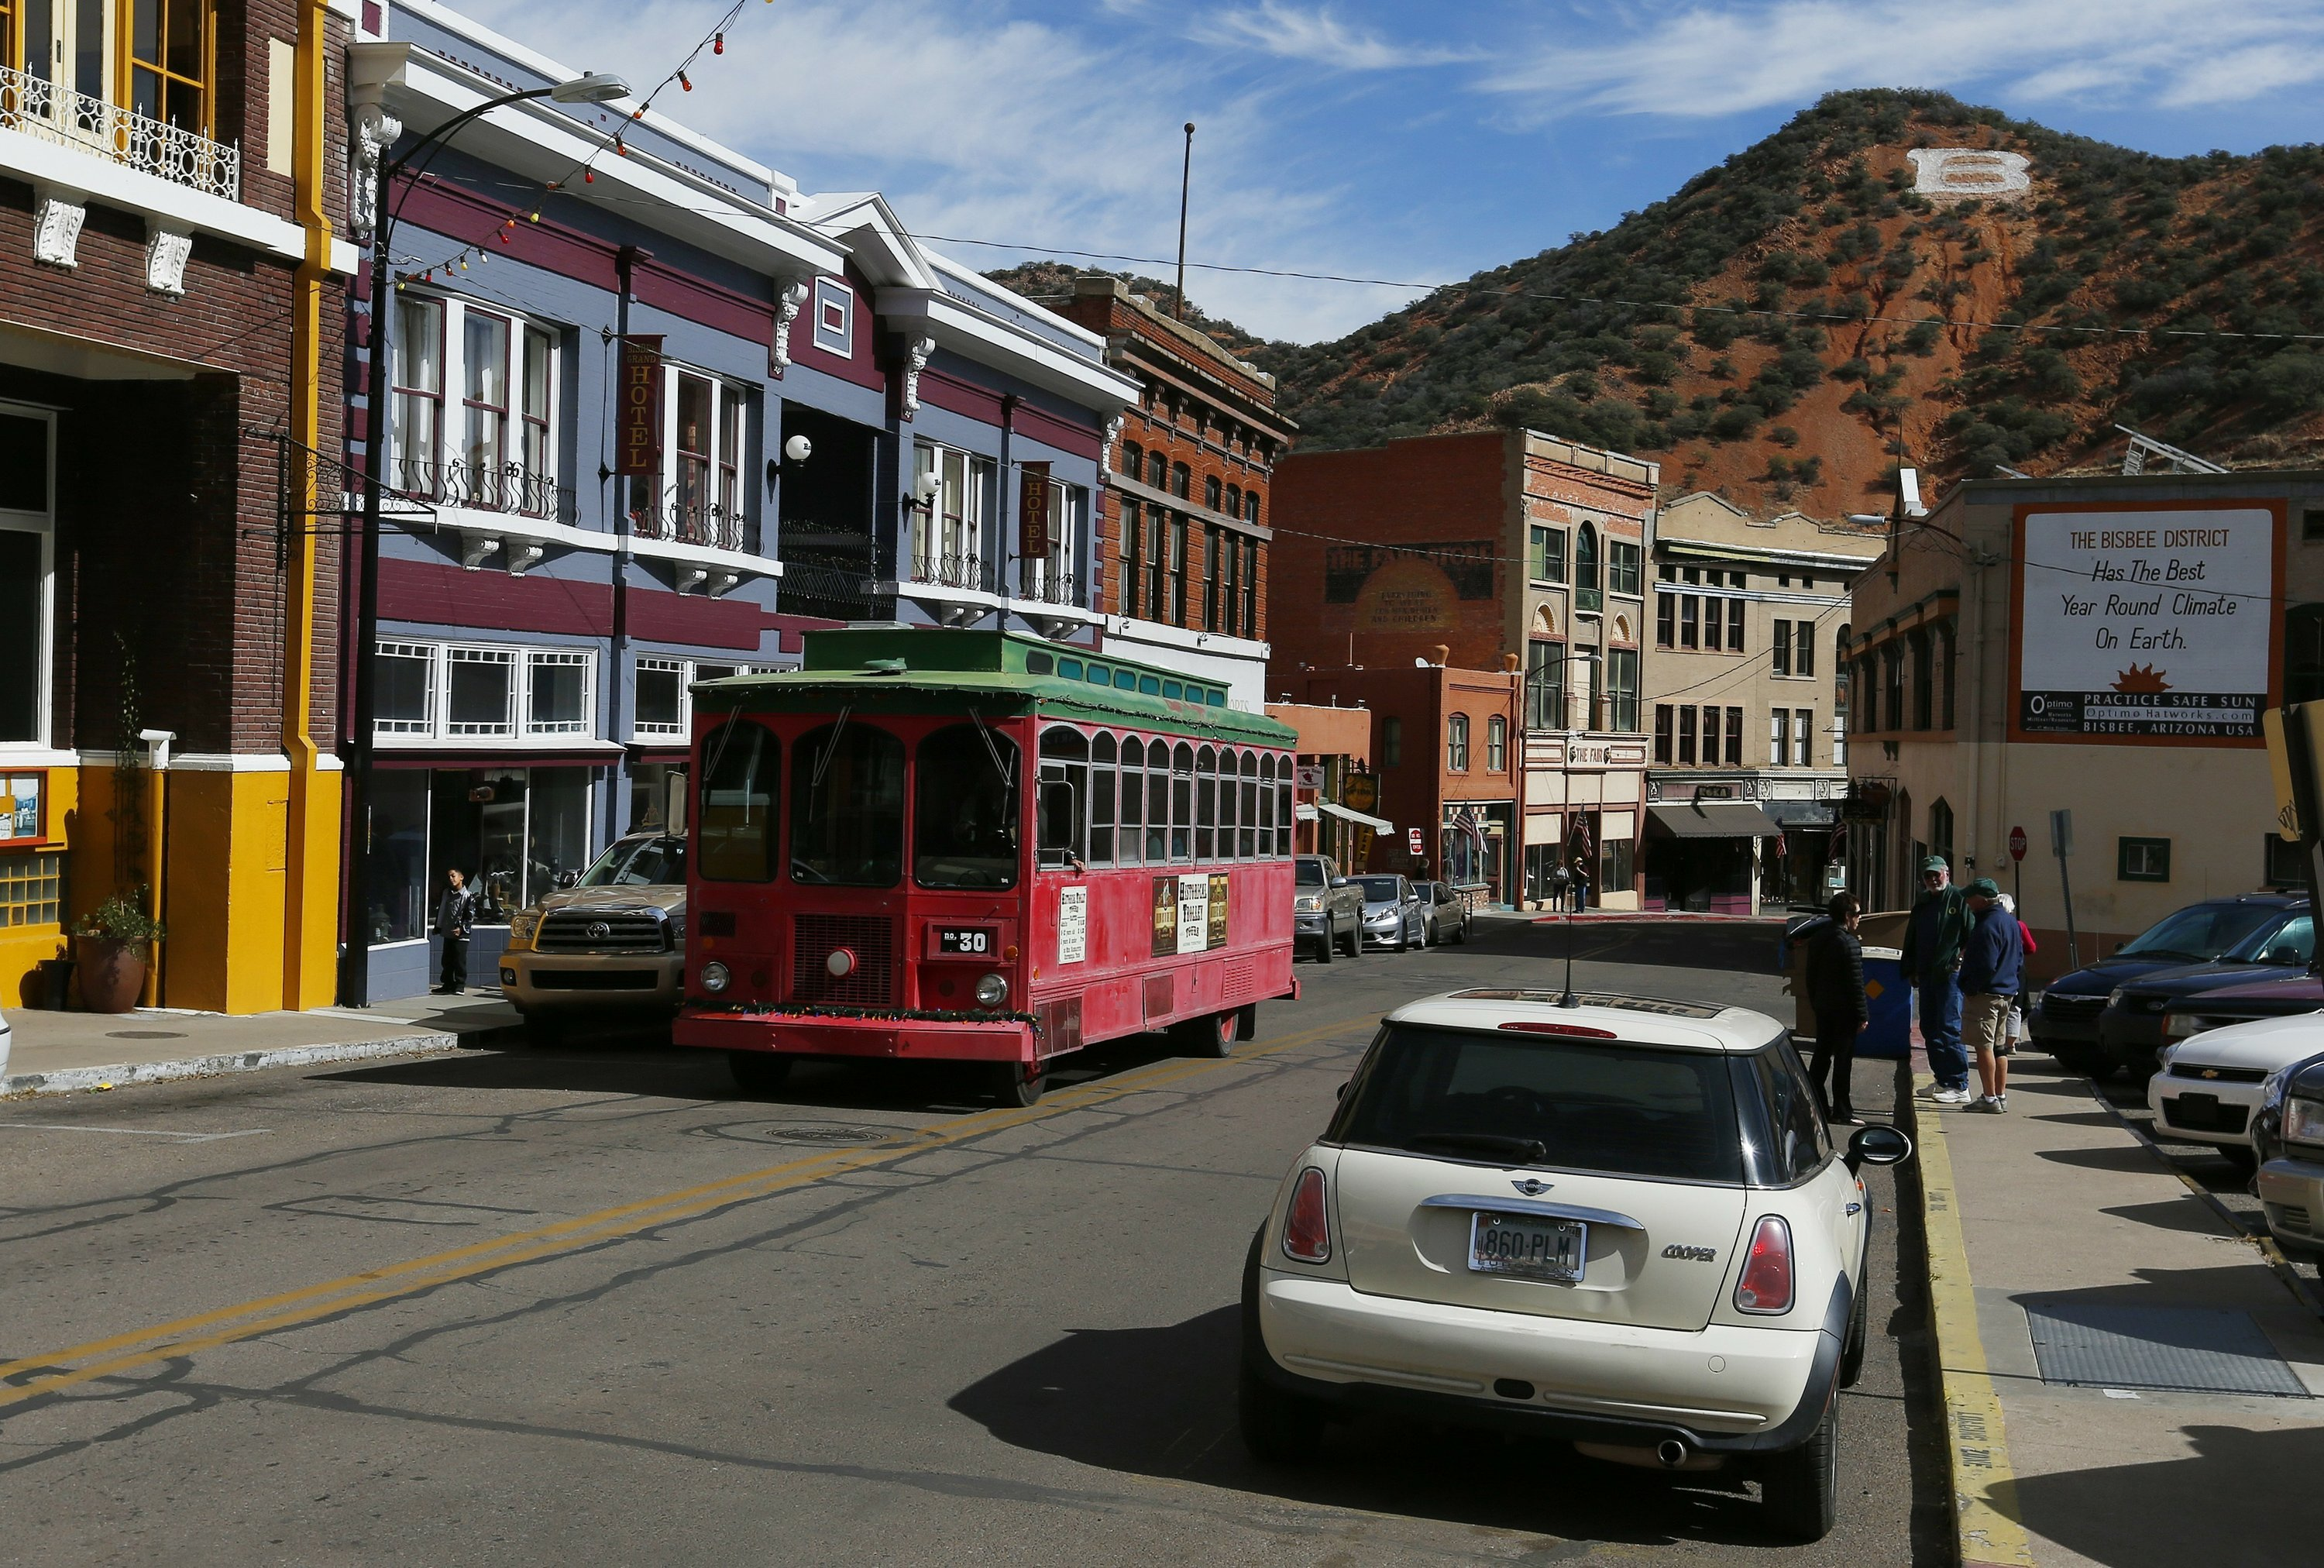 Bisbees Decision To Remove Fluoride From Water Criticized - Bisbee car show